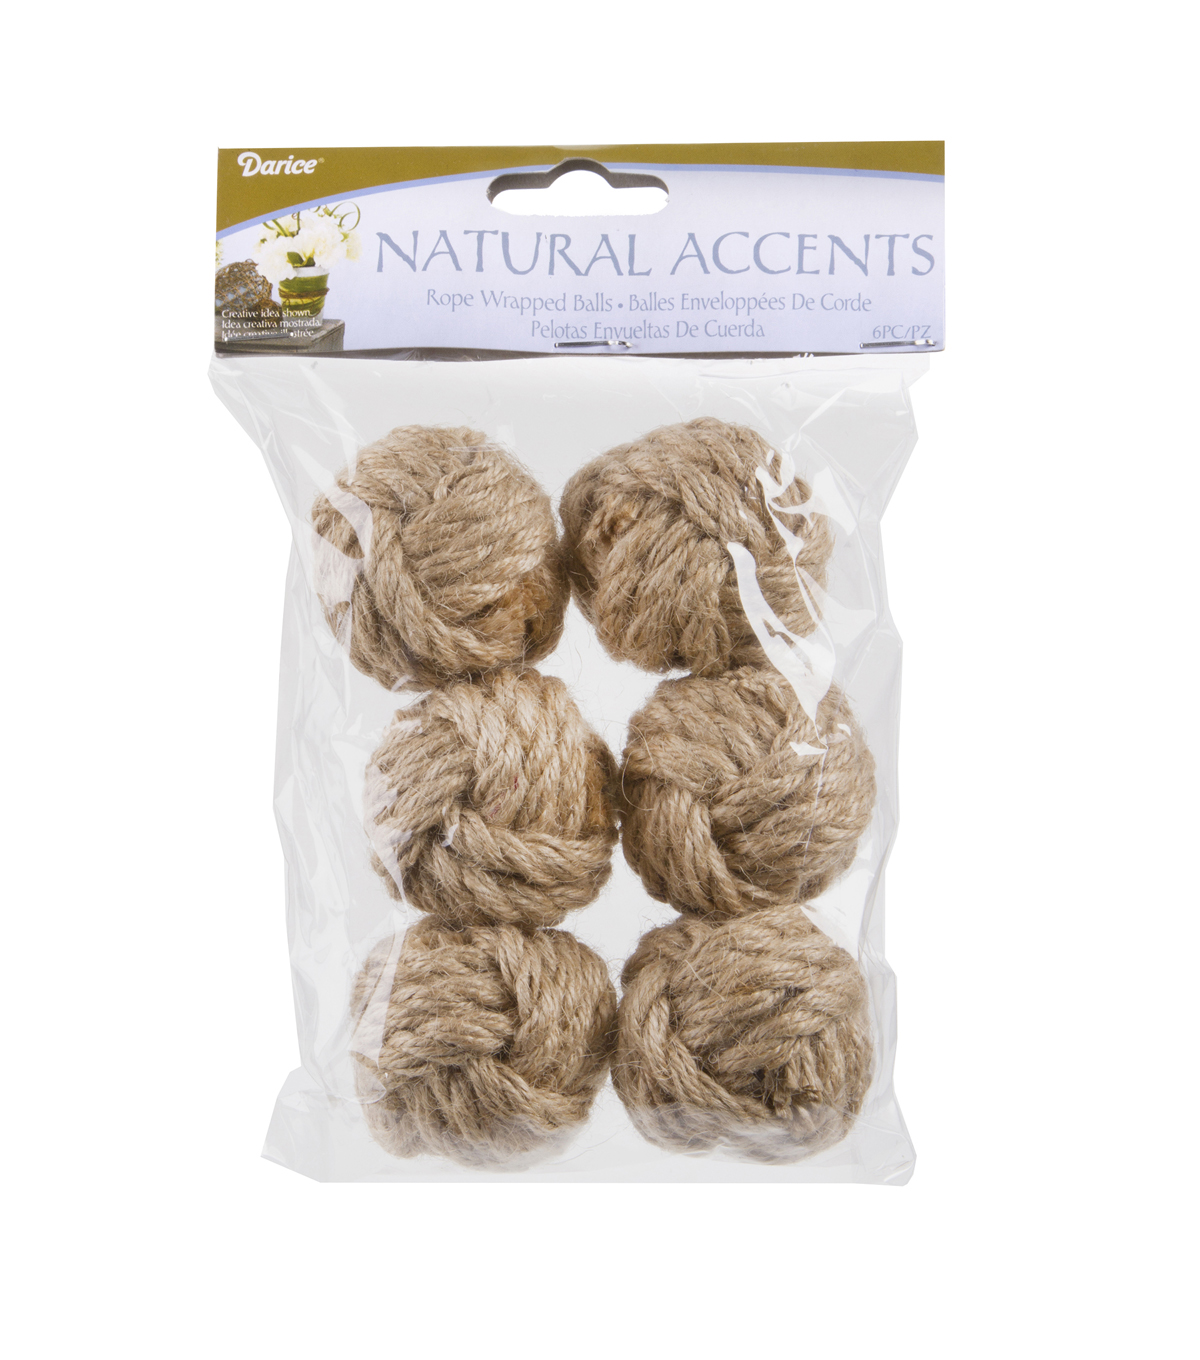 Darice Floral Rope Wrapped Ball-Natural